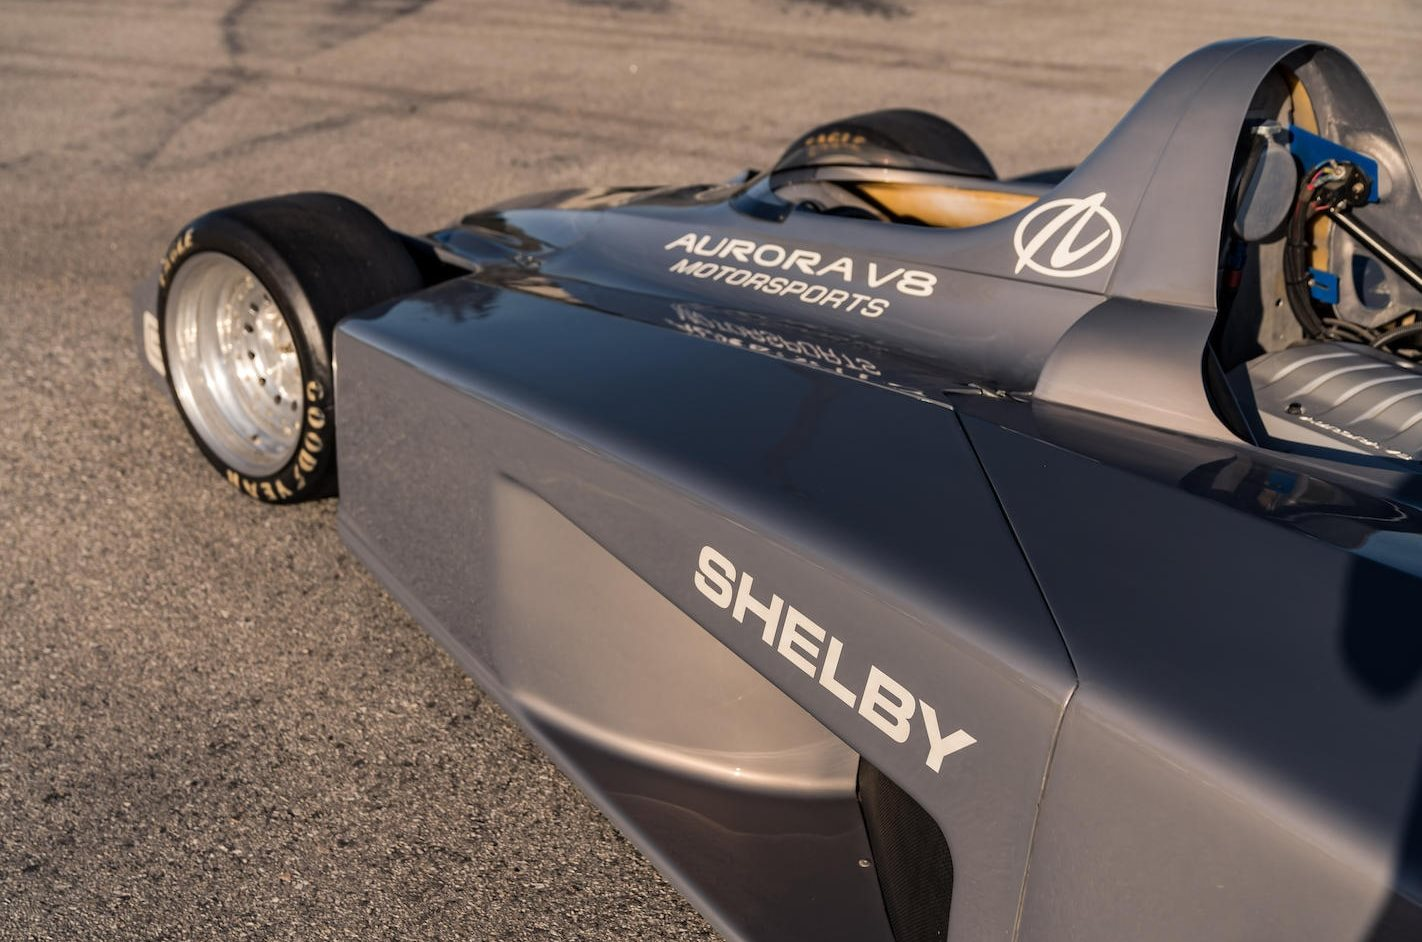 1997 Shelby Helby Aurora V8 Can-Am (35)